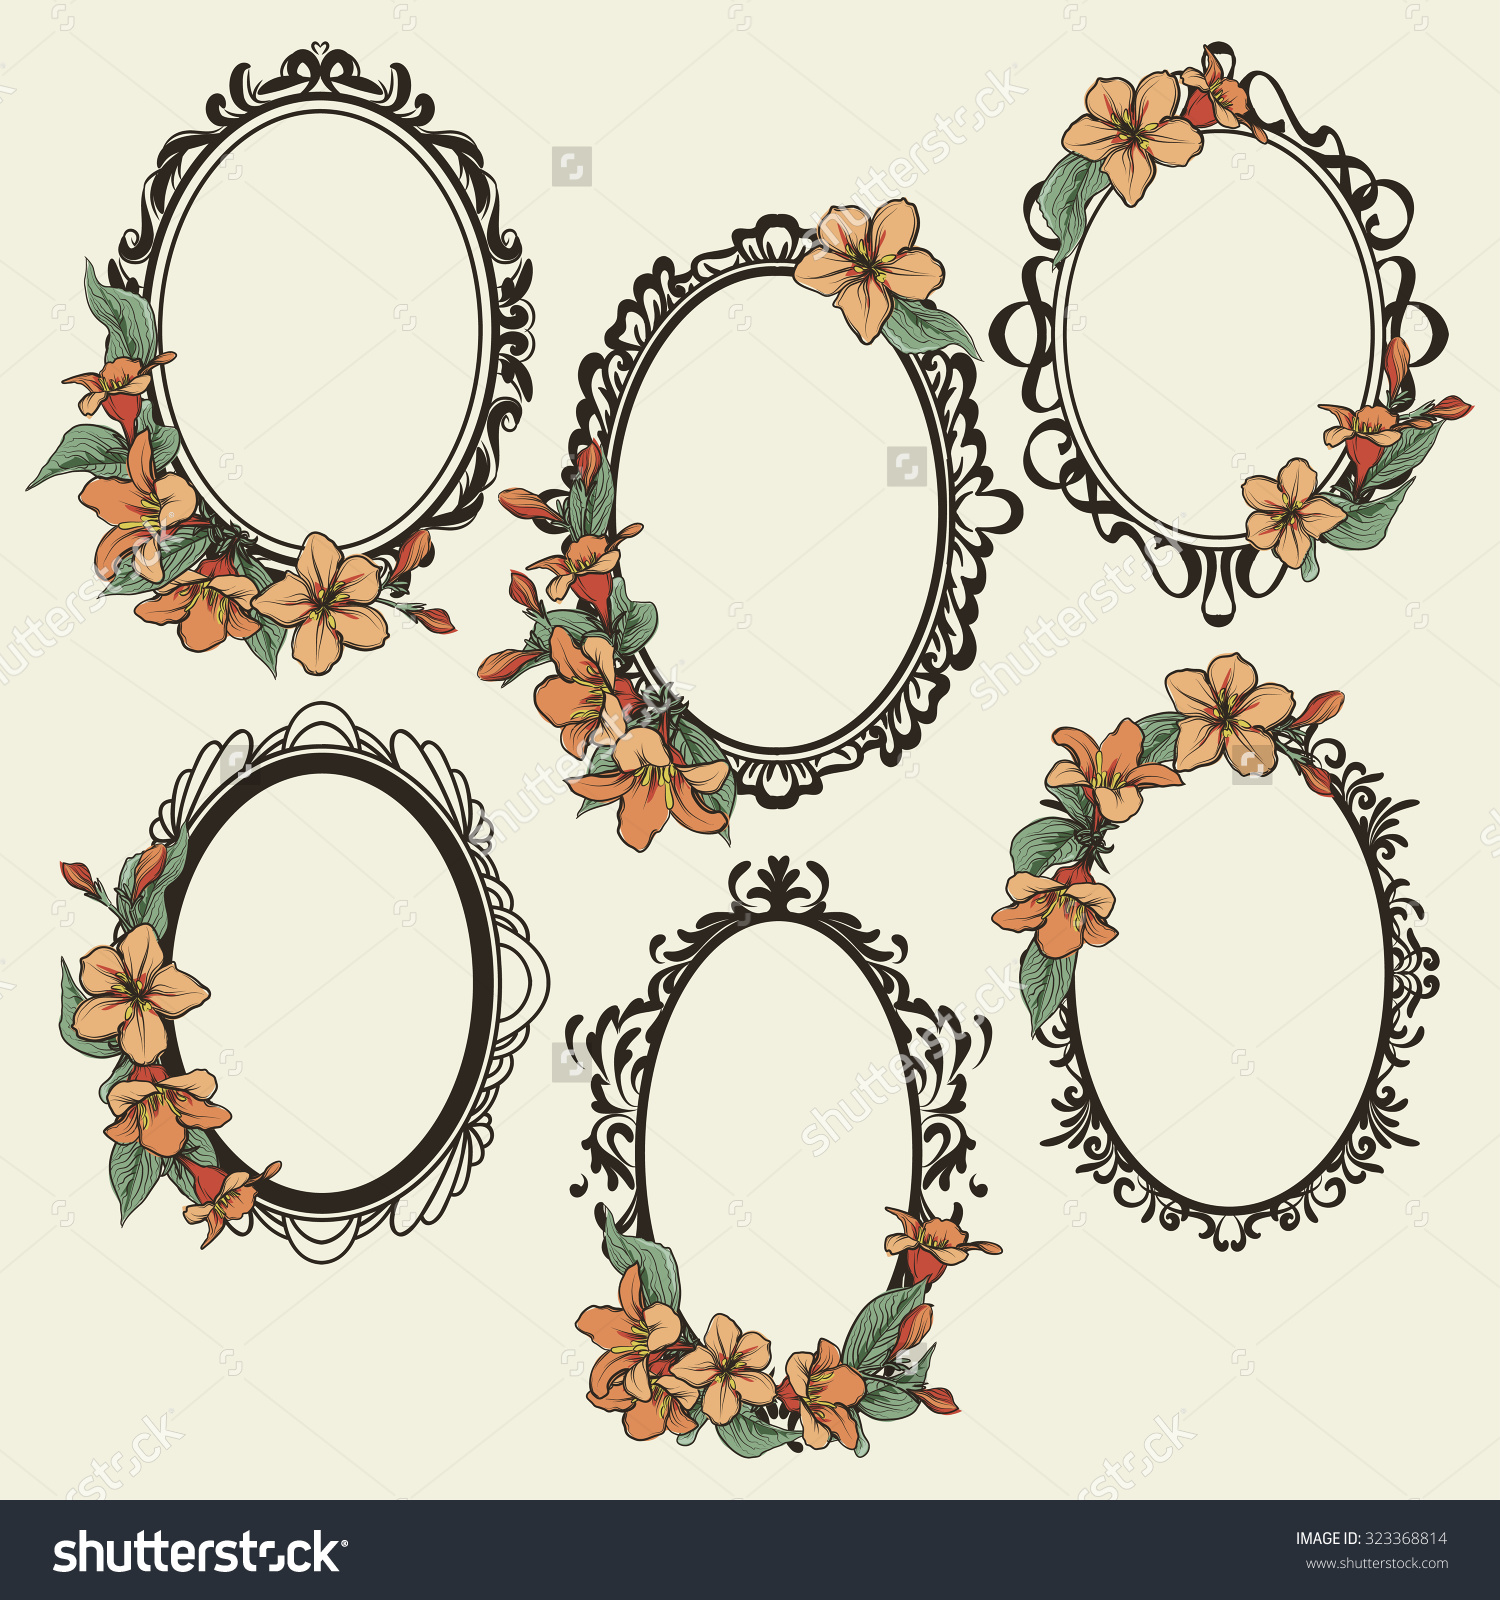 1500x1600 Stock Vector Set Of Vintage Oval Frames Decorated With Flowers And